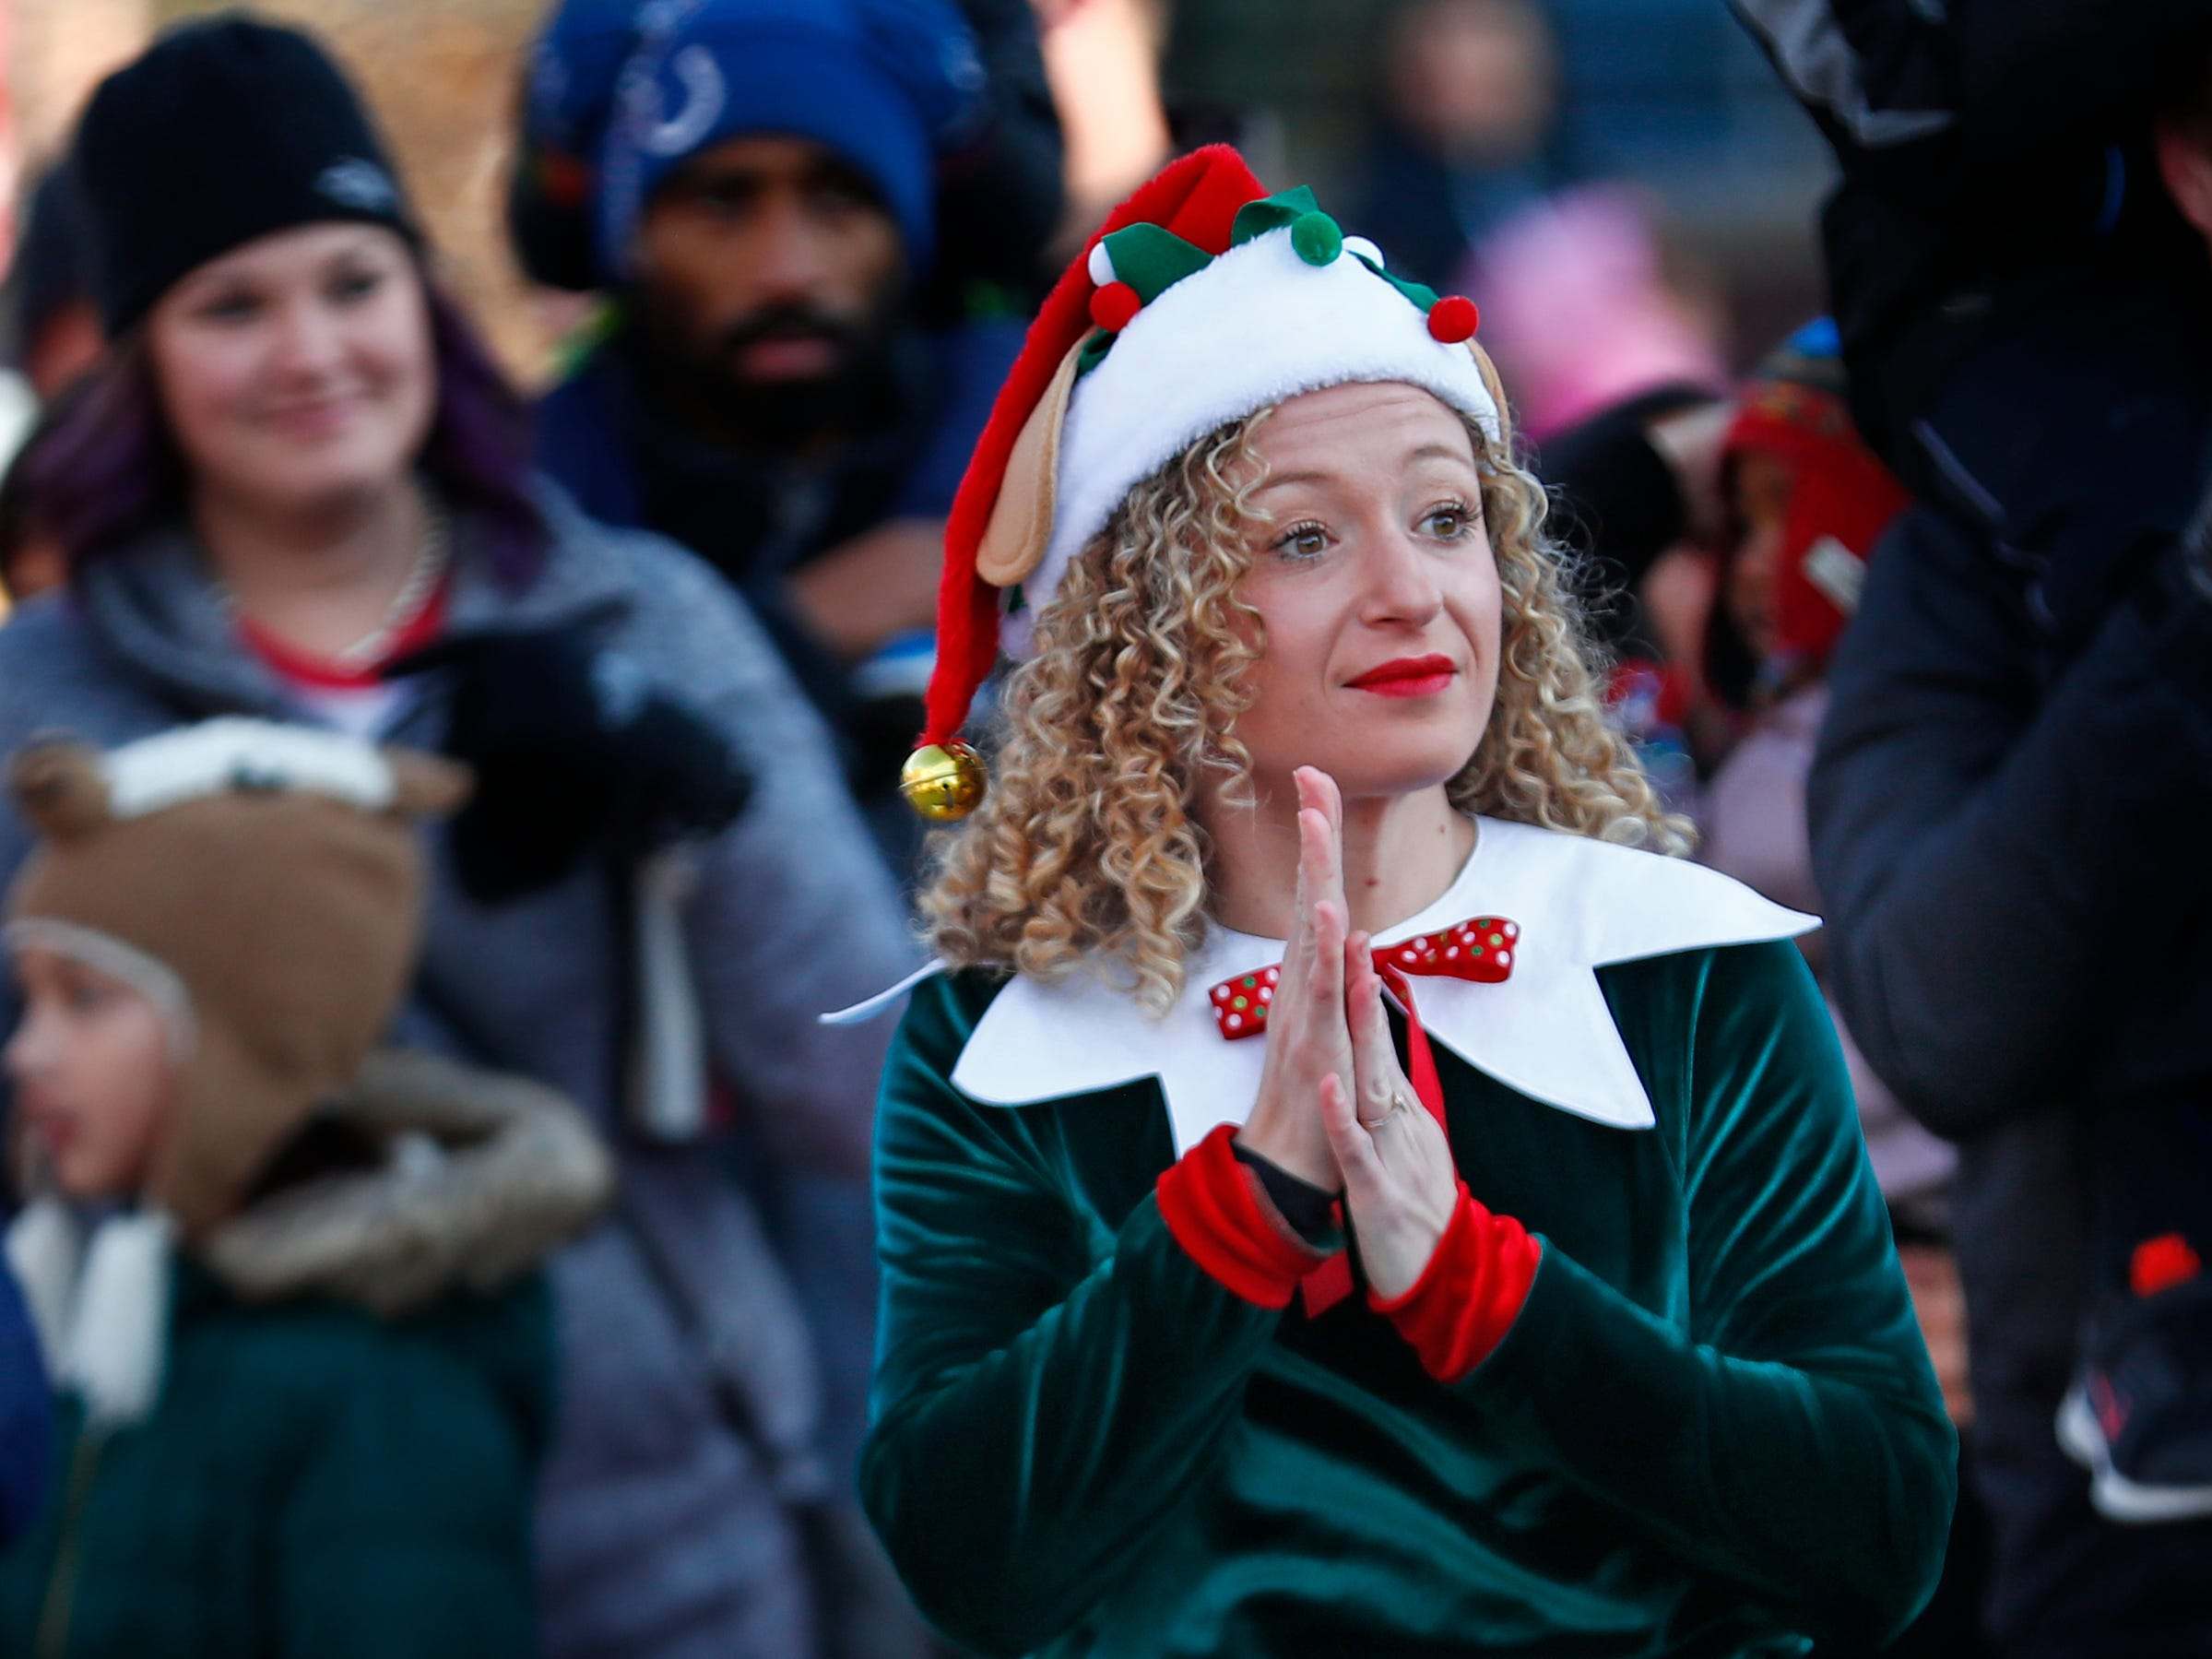 Elves, including Erika Howse entertain as the crowd awaits Santa's arrival at the Children's Museum of Indianapolis in an IndyCar driven by racer Ed Carpenter, Friday, Nov. 23, 2018.